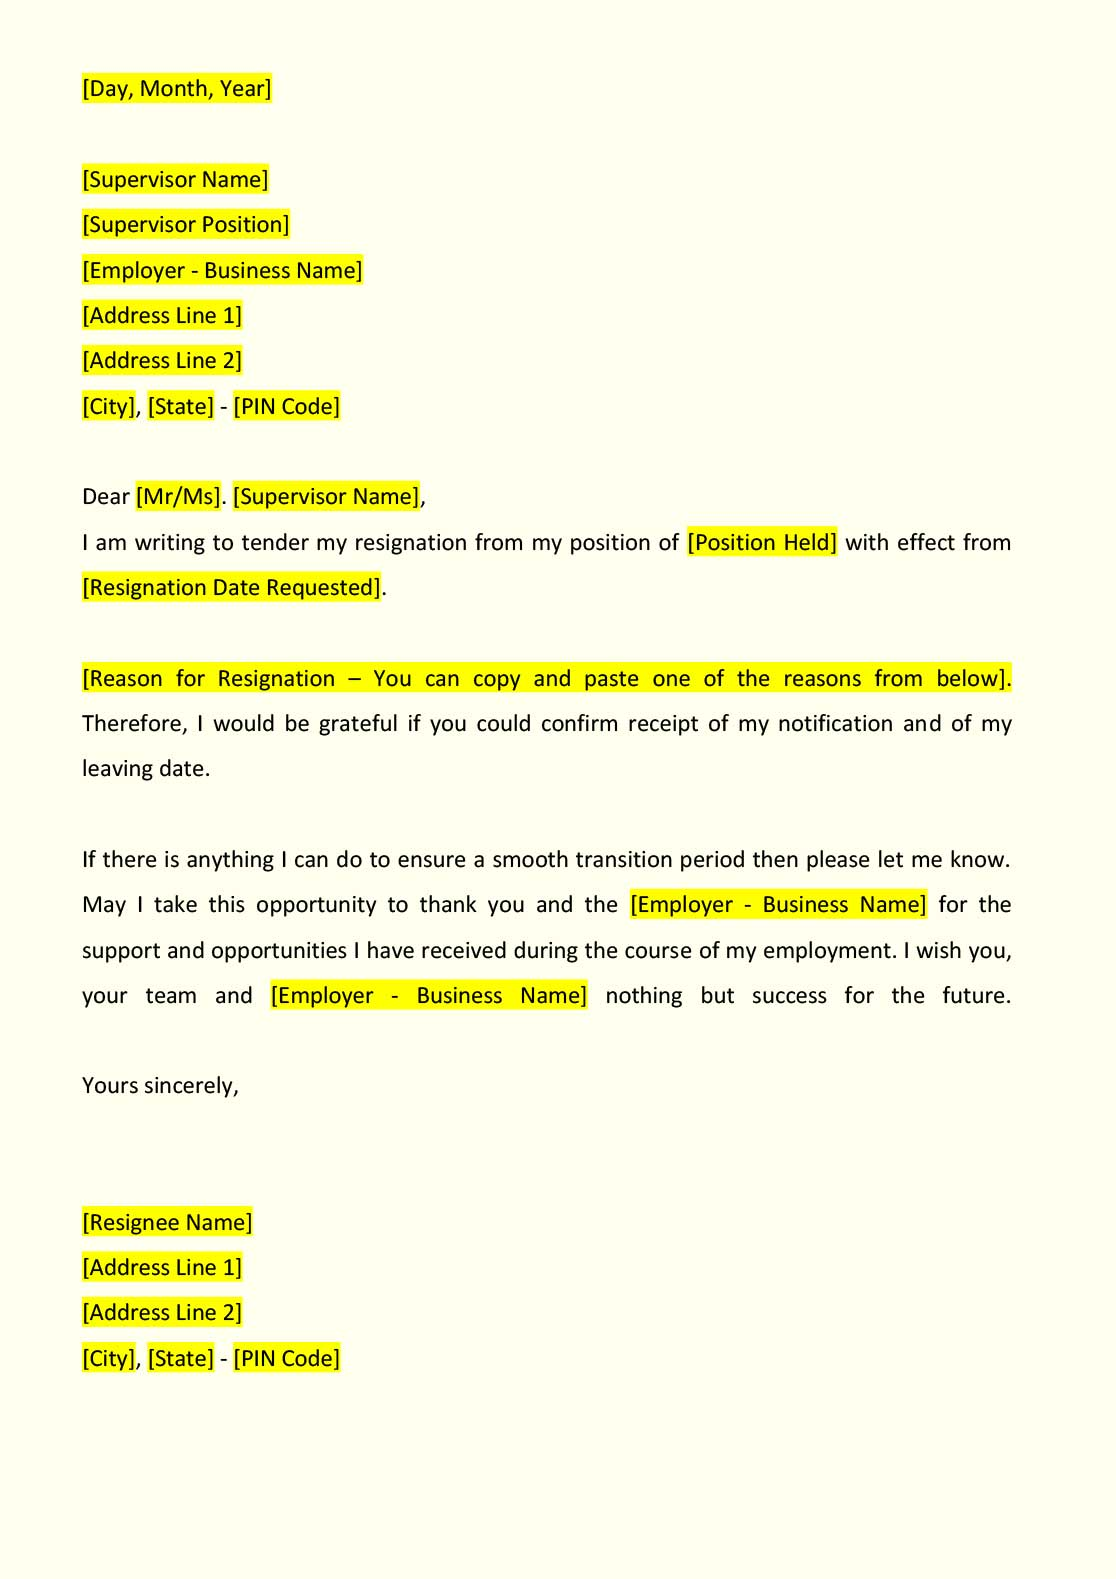 Resignation letter format indiafilings document center sample resignation letter spiritdancerdesigns